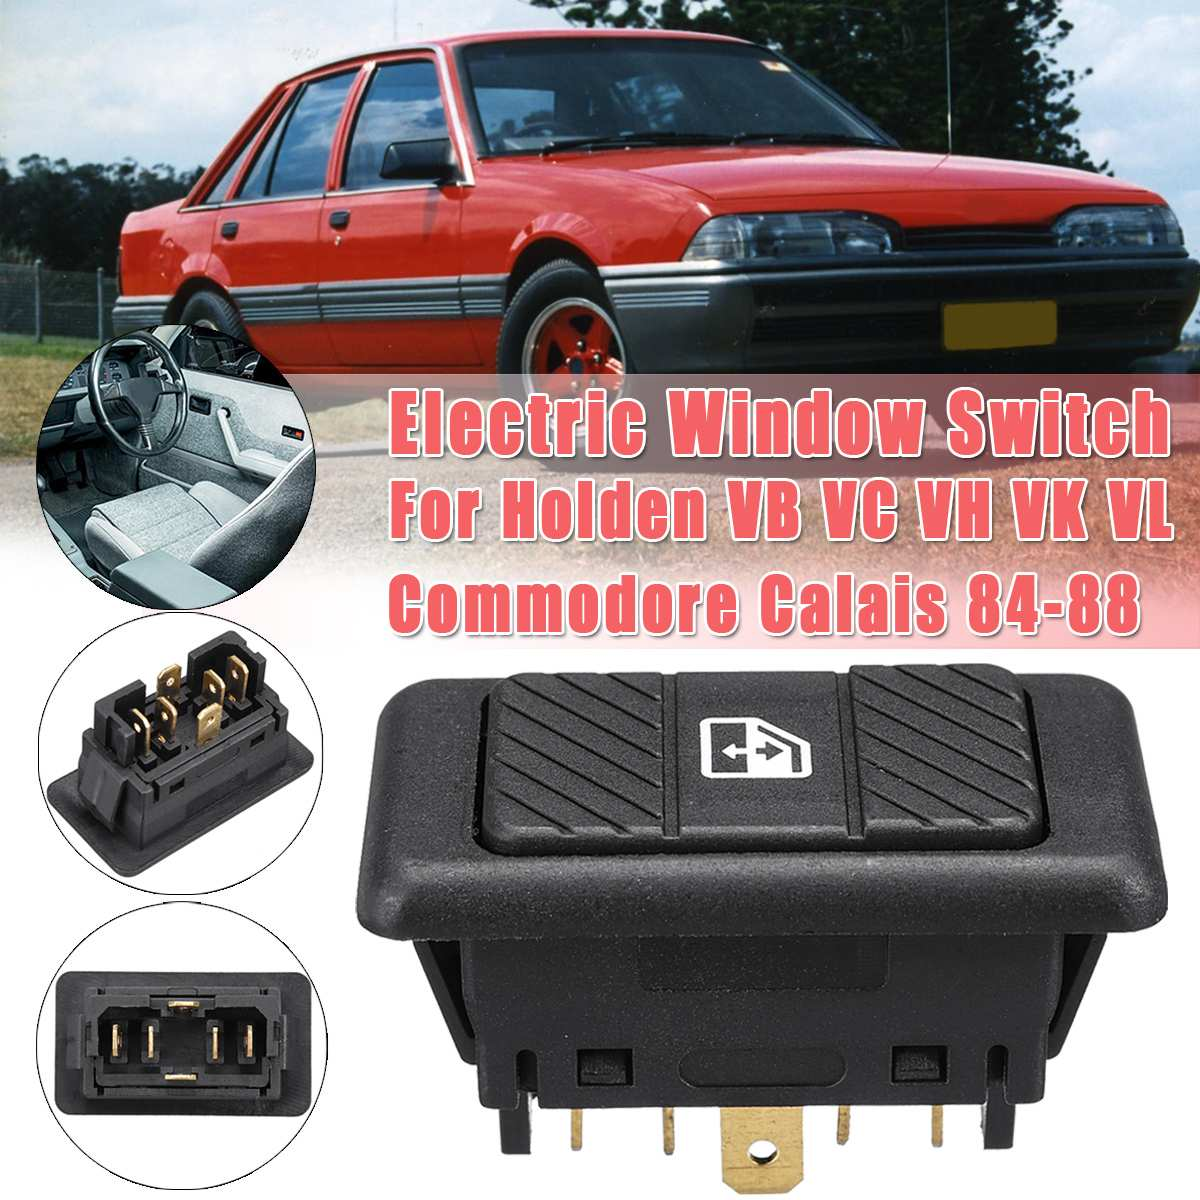 6 Pins Car Single Electric Window Toggle Switch For Holden VB VC VH VK VL Commodore Calais 84-88 BWASWPW04